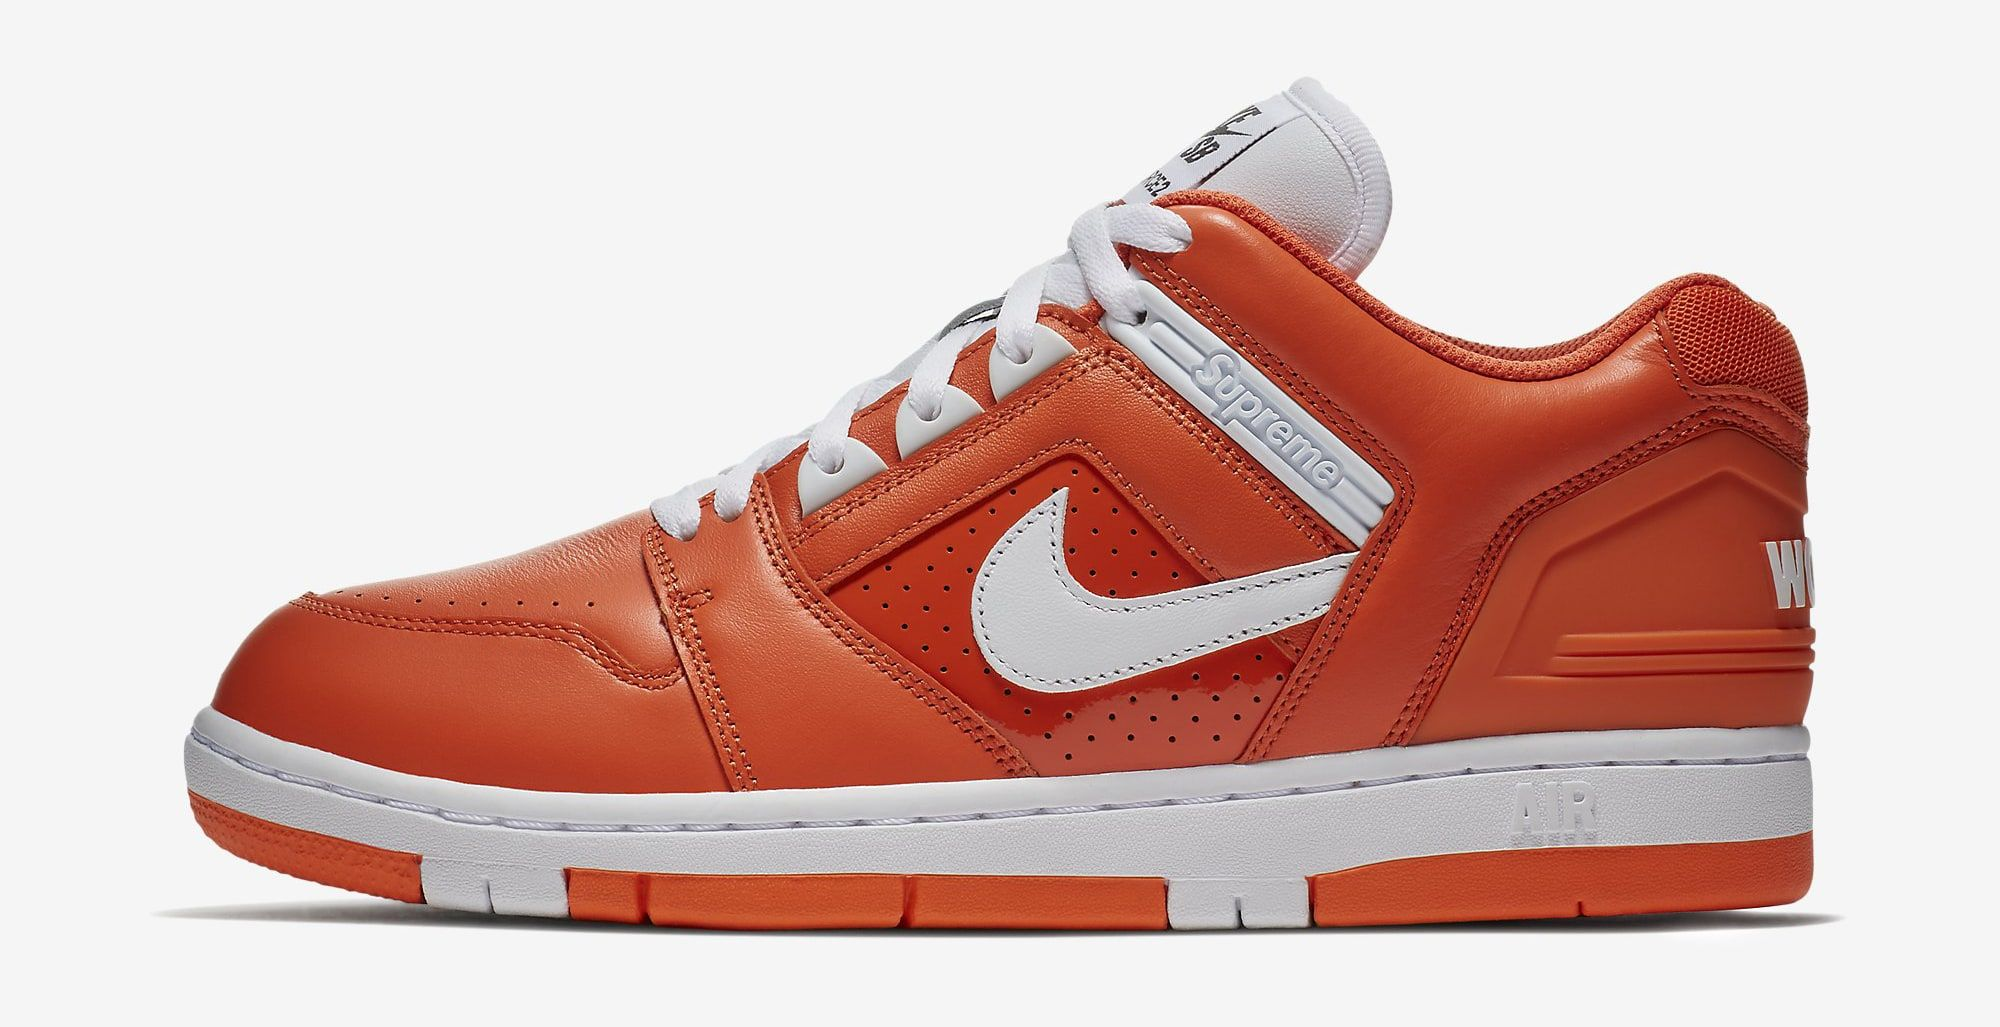 Pin by Luis on Shoes in 2019 | Nike shoes for sale, Nike